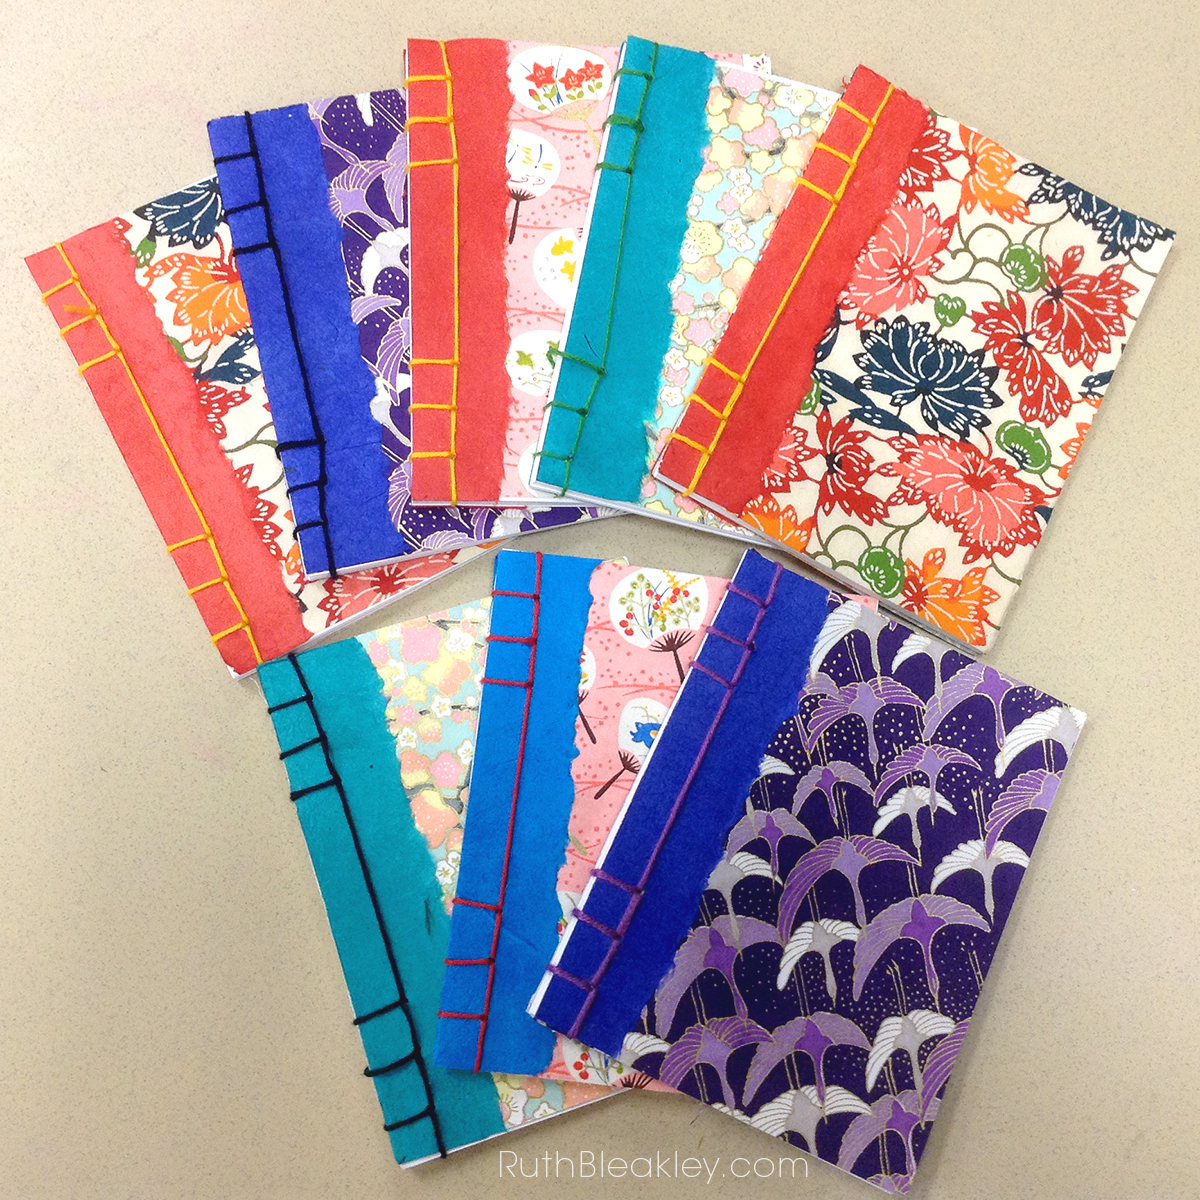 Chiyogami Japanese Stab Binding Notebooks made by a class taught by Ruth Bleakley in Florida